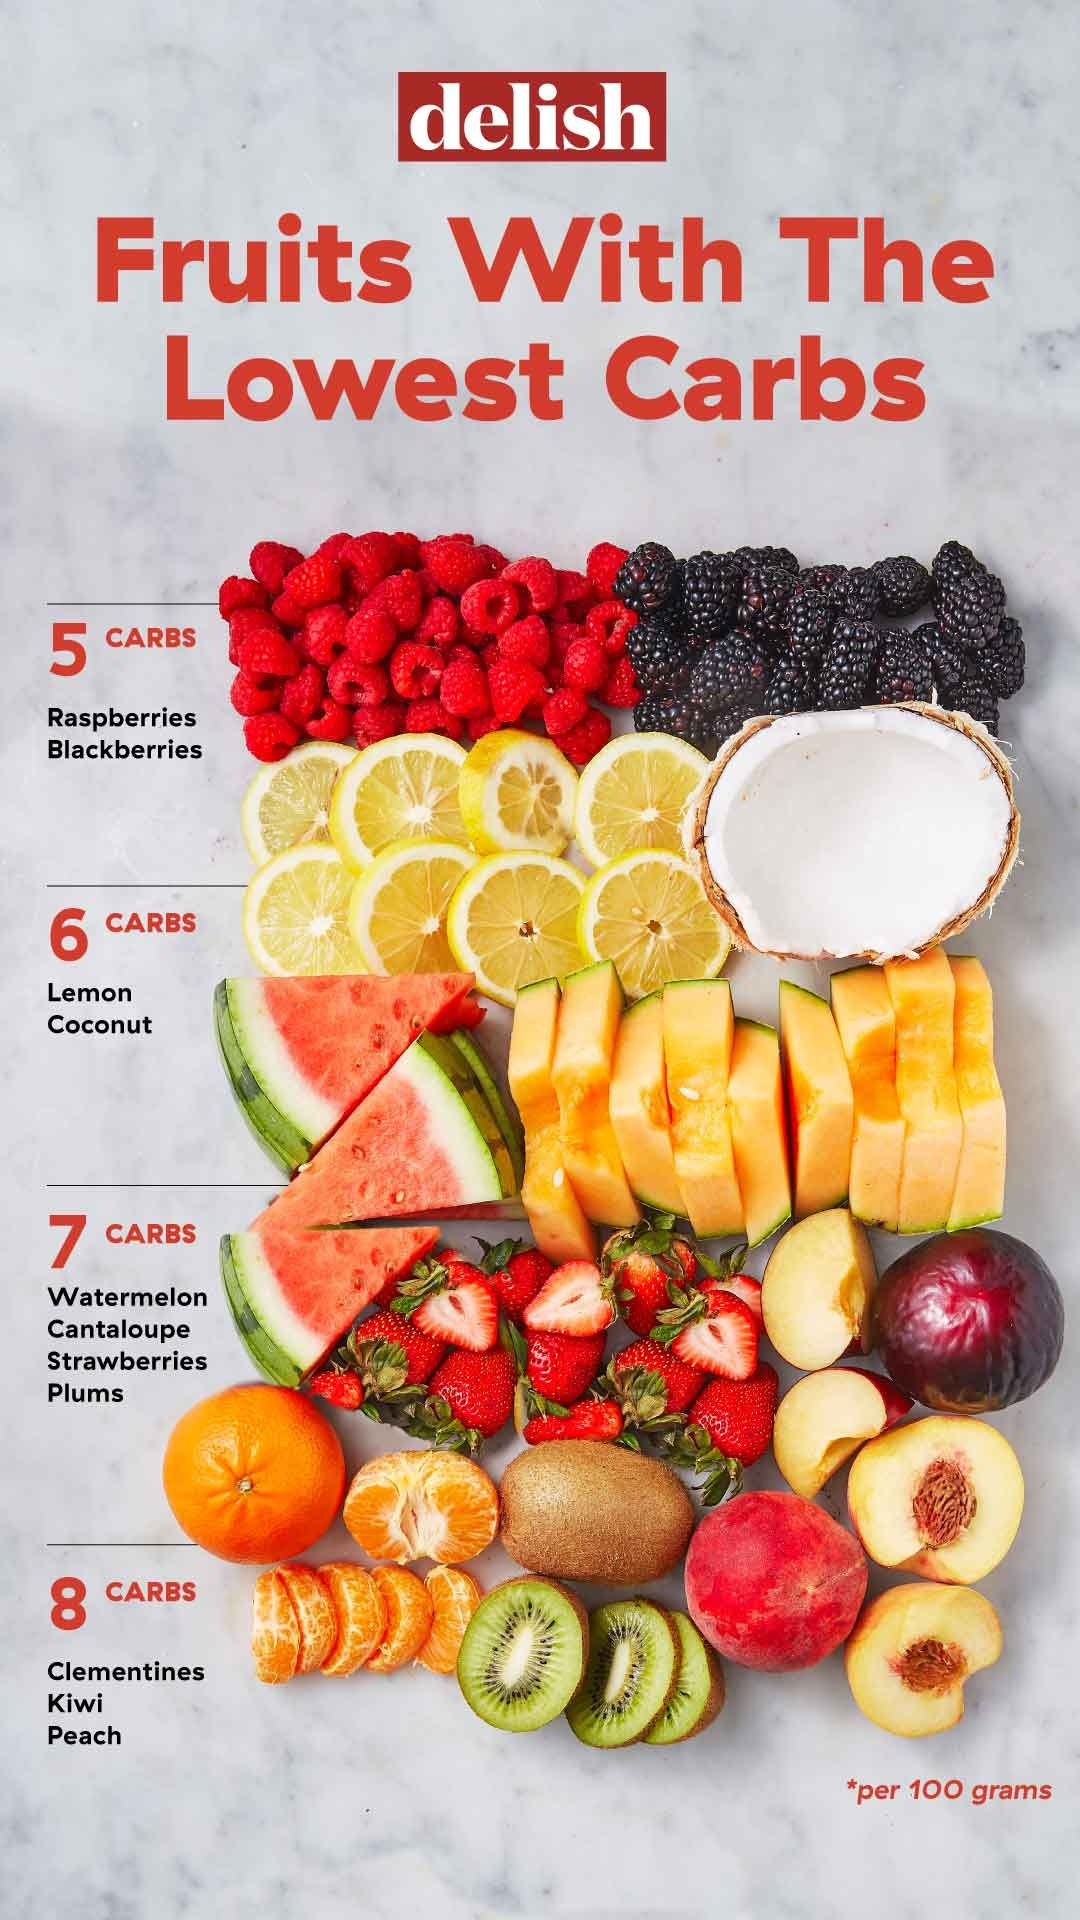 Low Carb Fruits And Berries Guide To The Best Fruits For Keto Diet